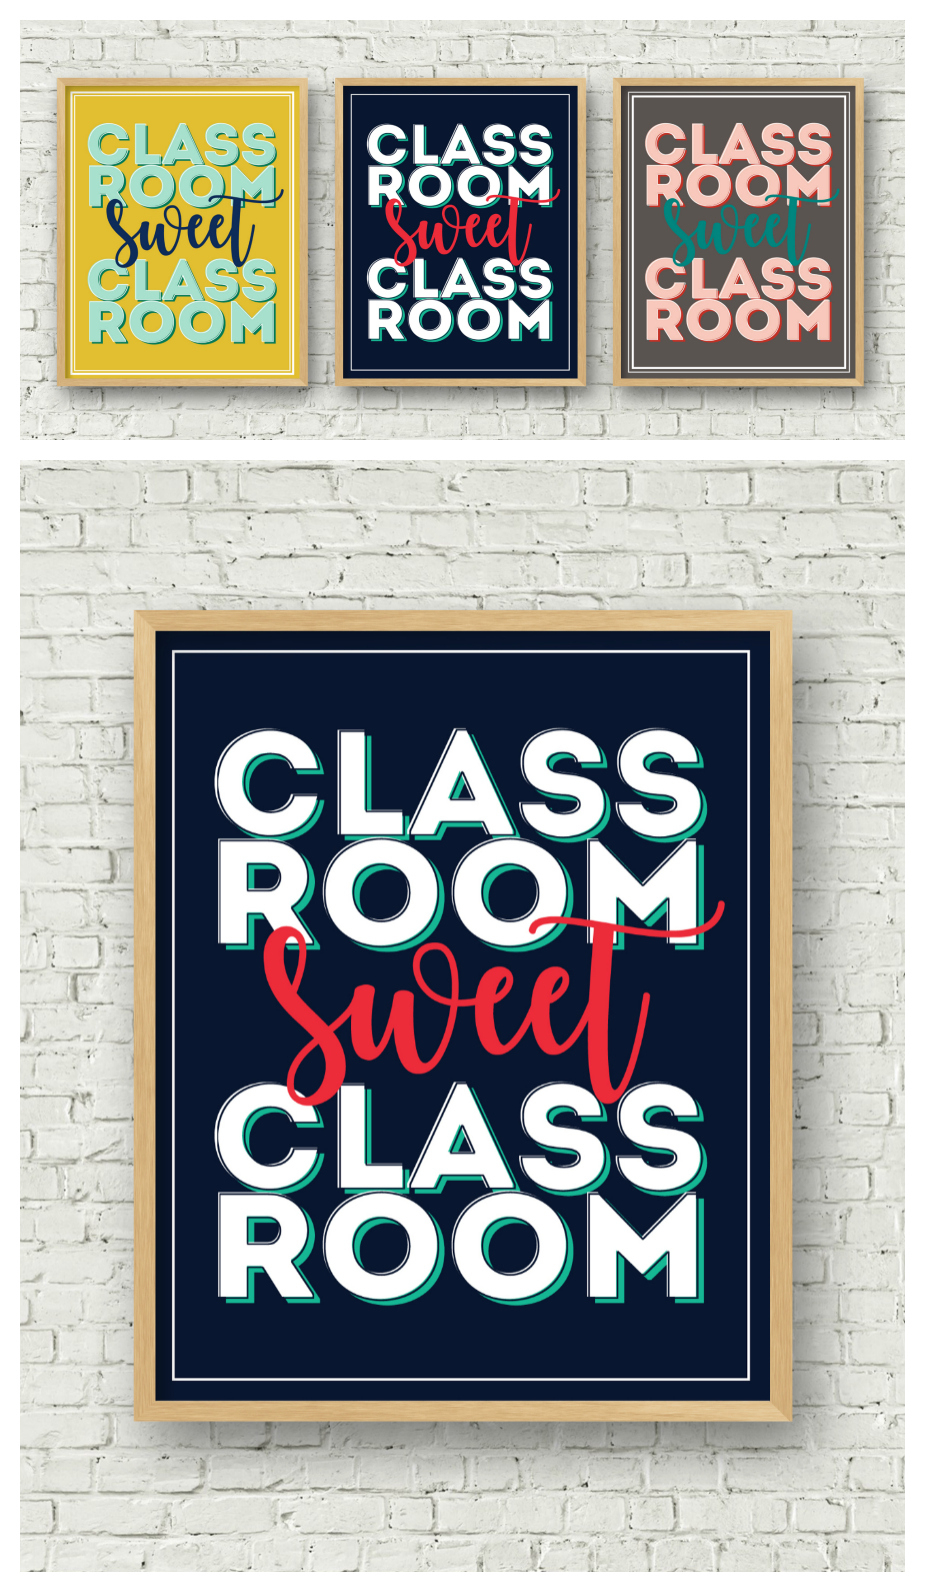 Classroom Sweet Classroom Print | Teacher Appreciation Gift Ideas